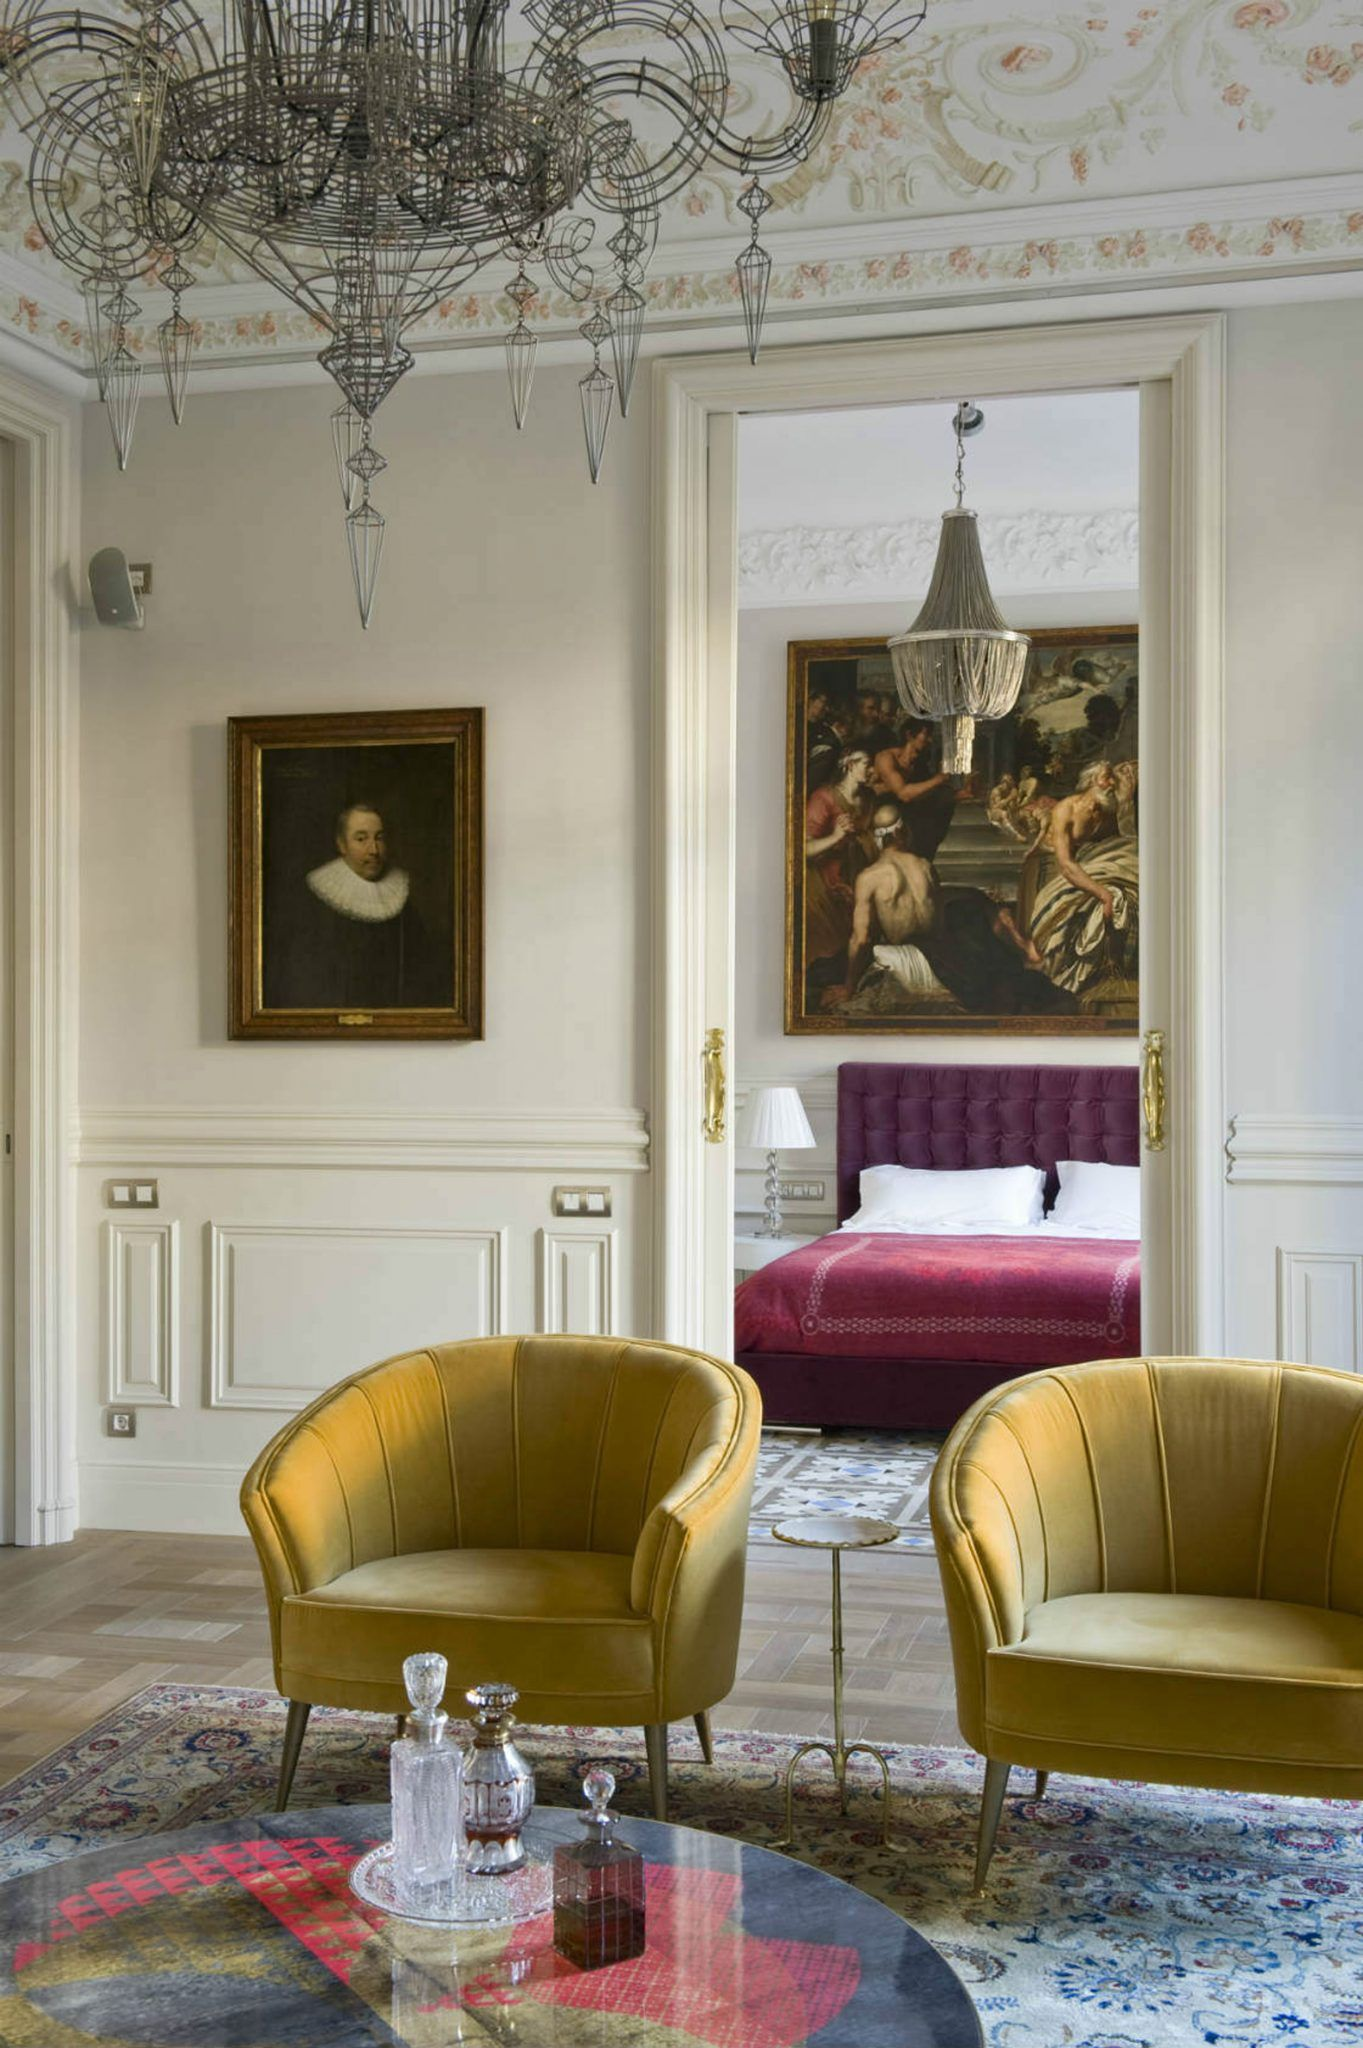 Furniture trends 2020/2021: The return of the vintage ...